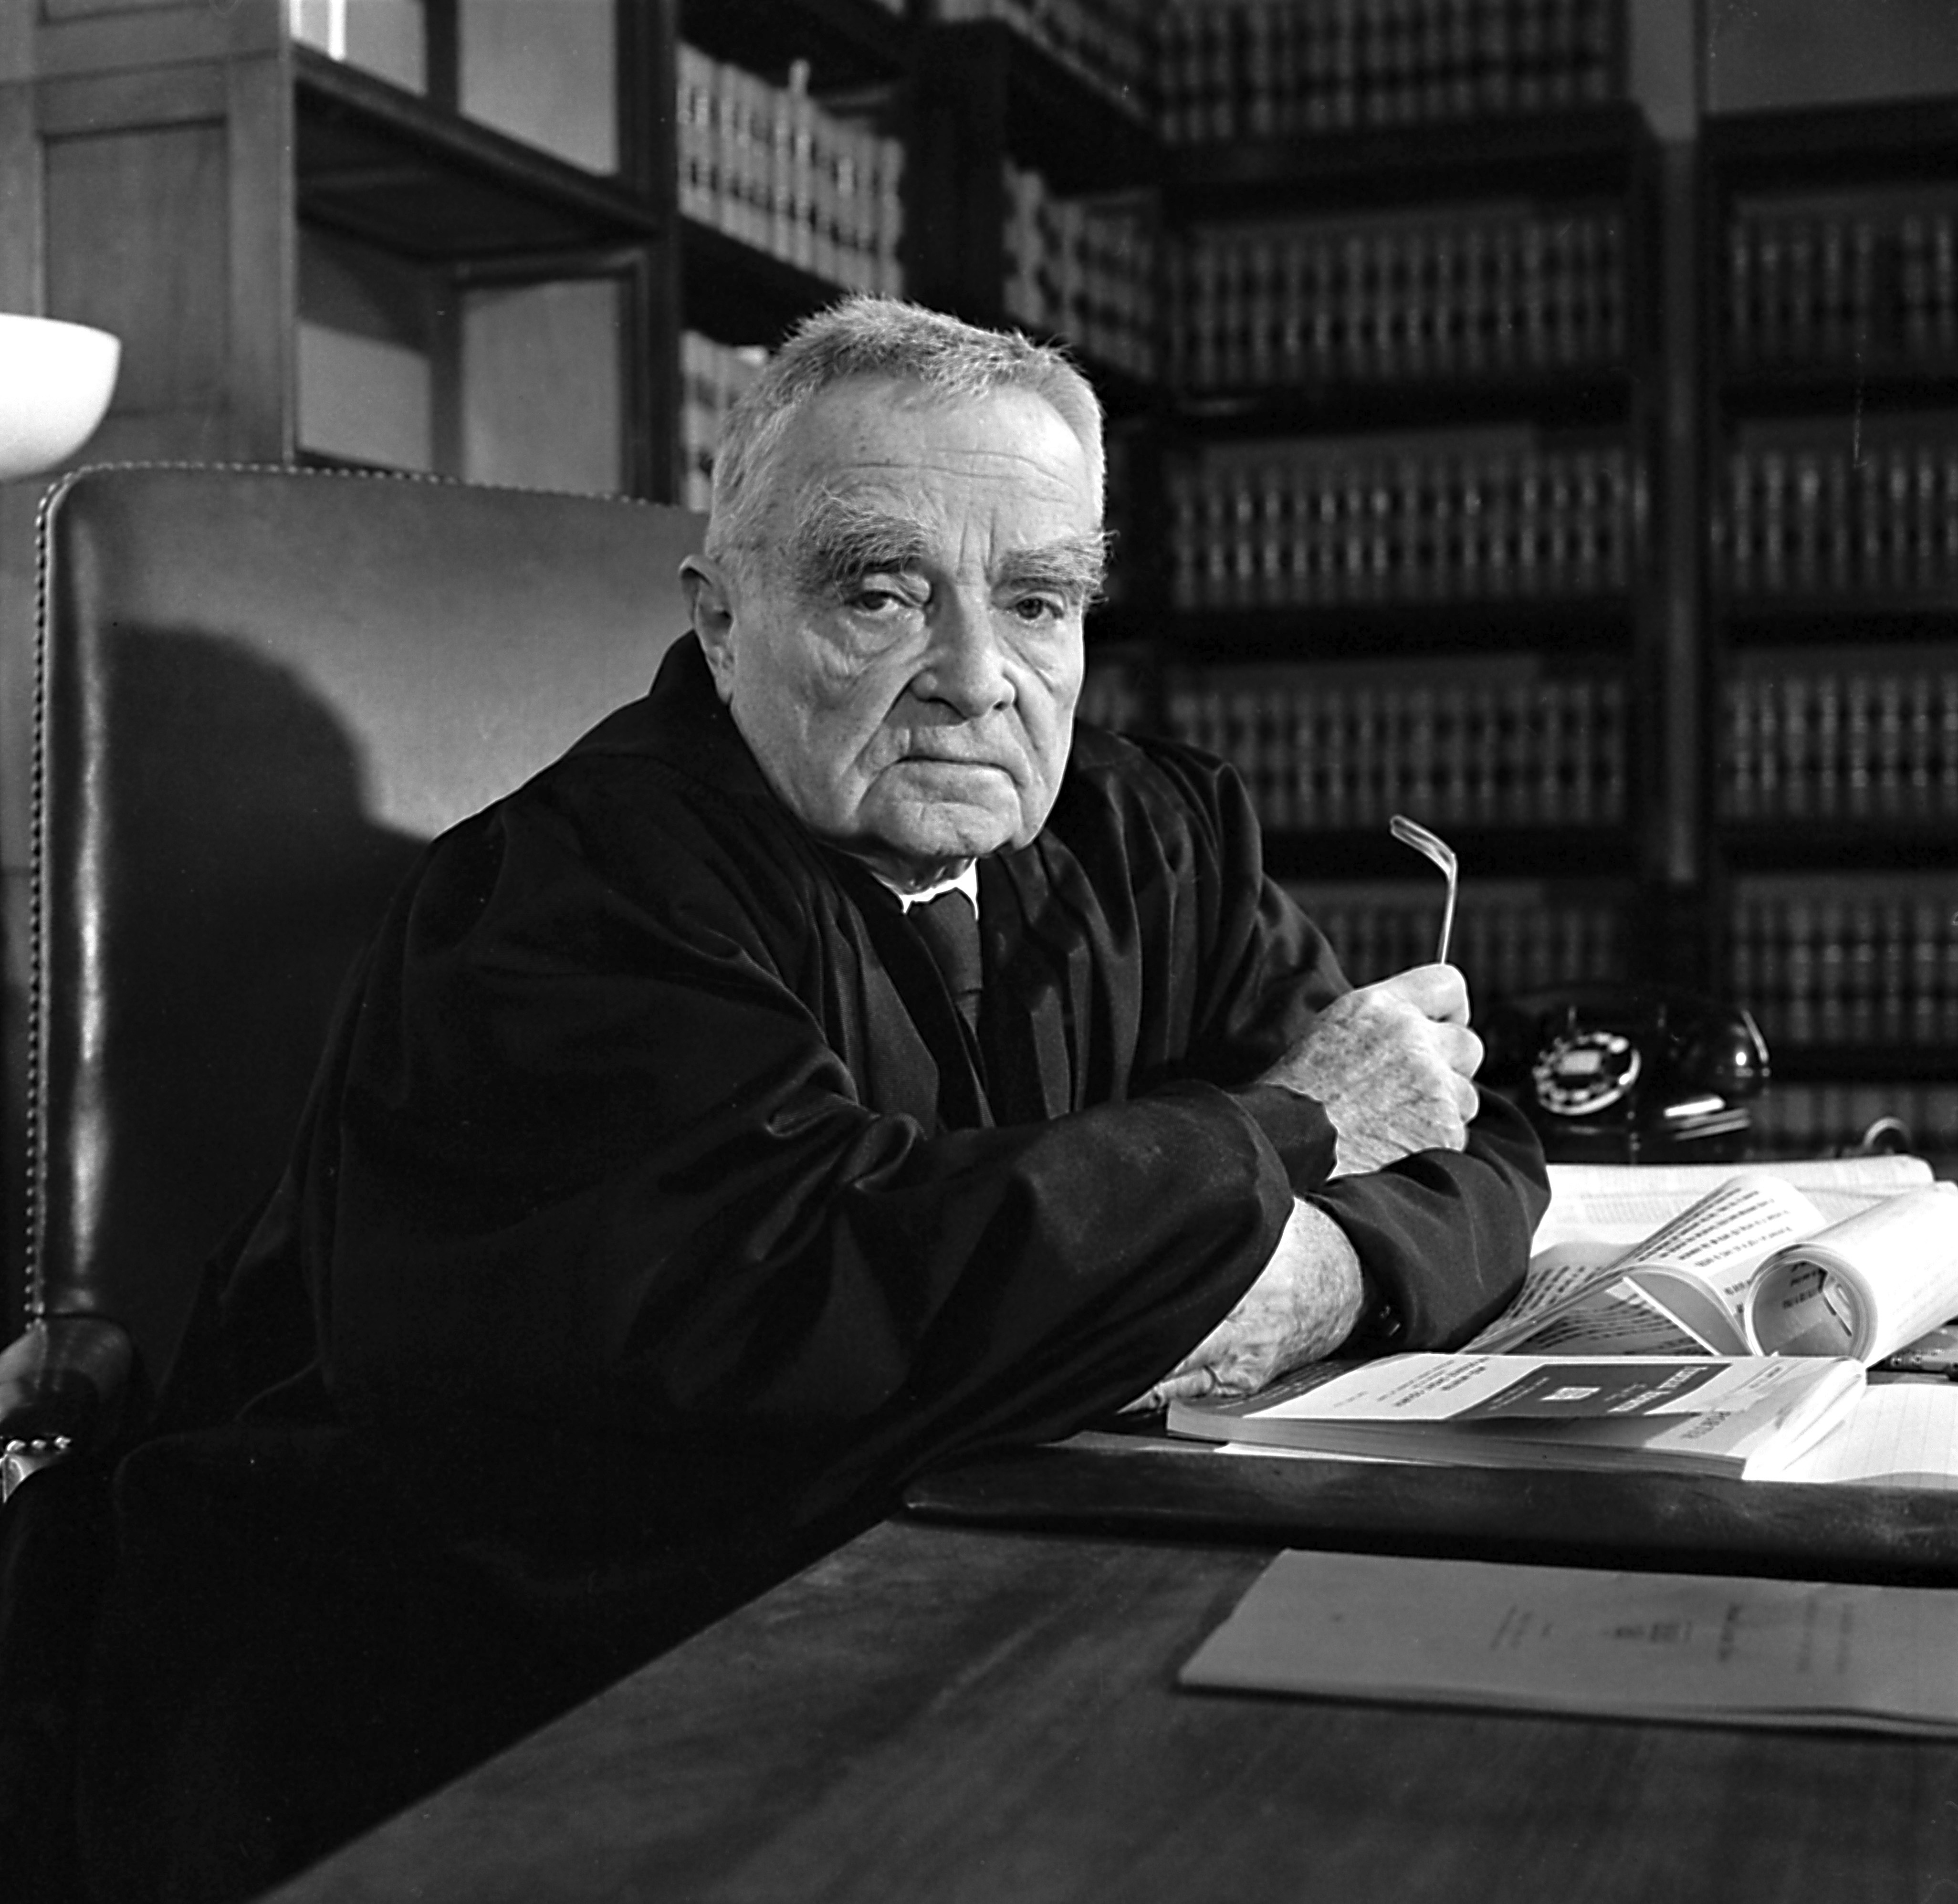 Judge Learned Hand is seen at the U.S. Courthouse in New York in 1958. Hand, the great 20th century jurist, asserted that anyone had the right to arrange their affairs to pay as little in taxes as possible.